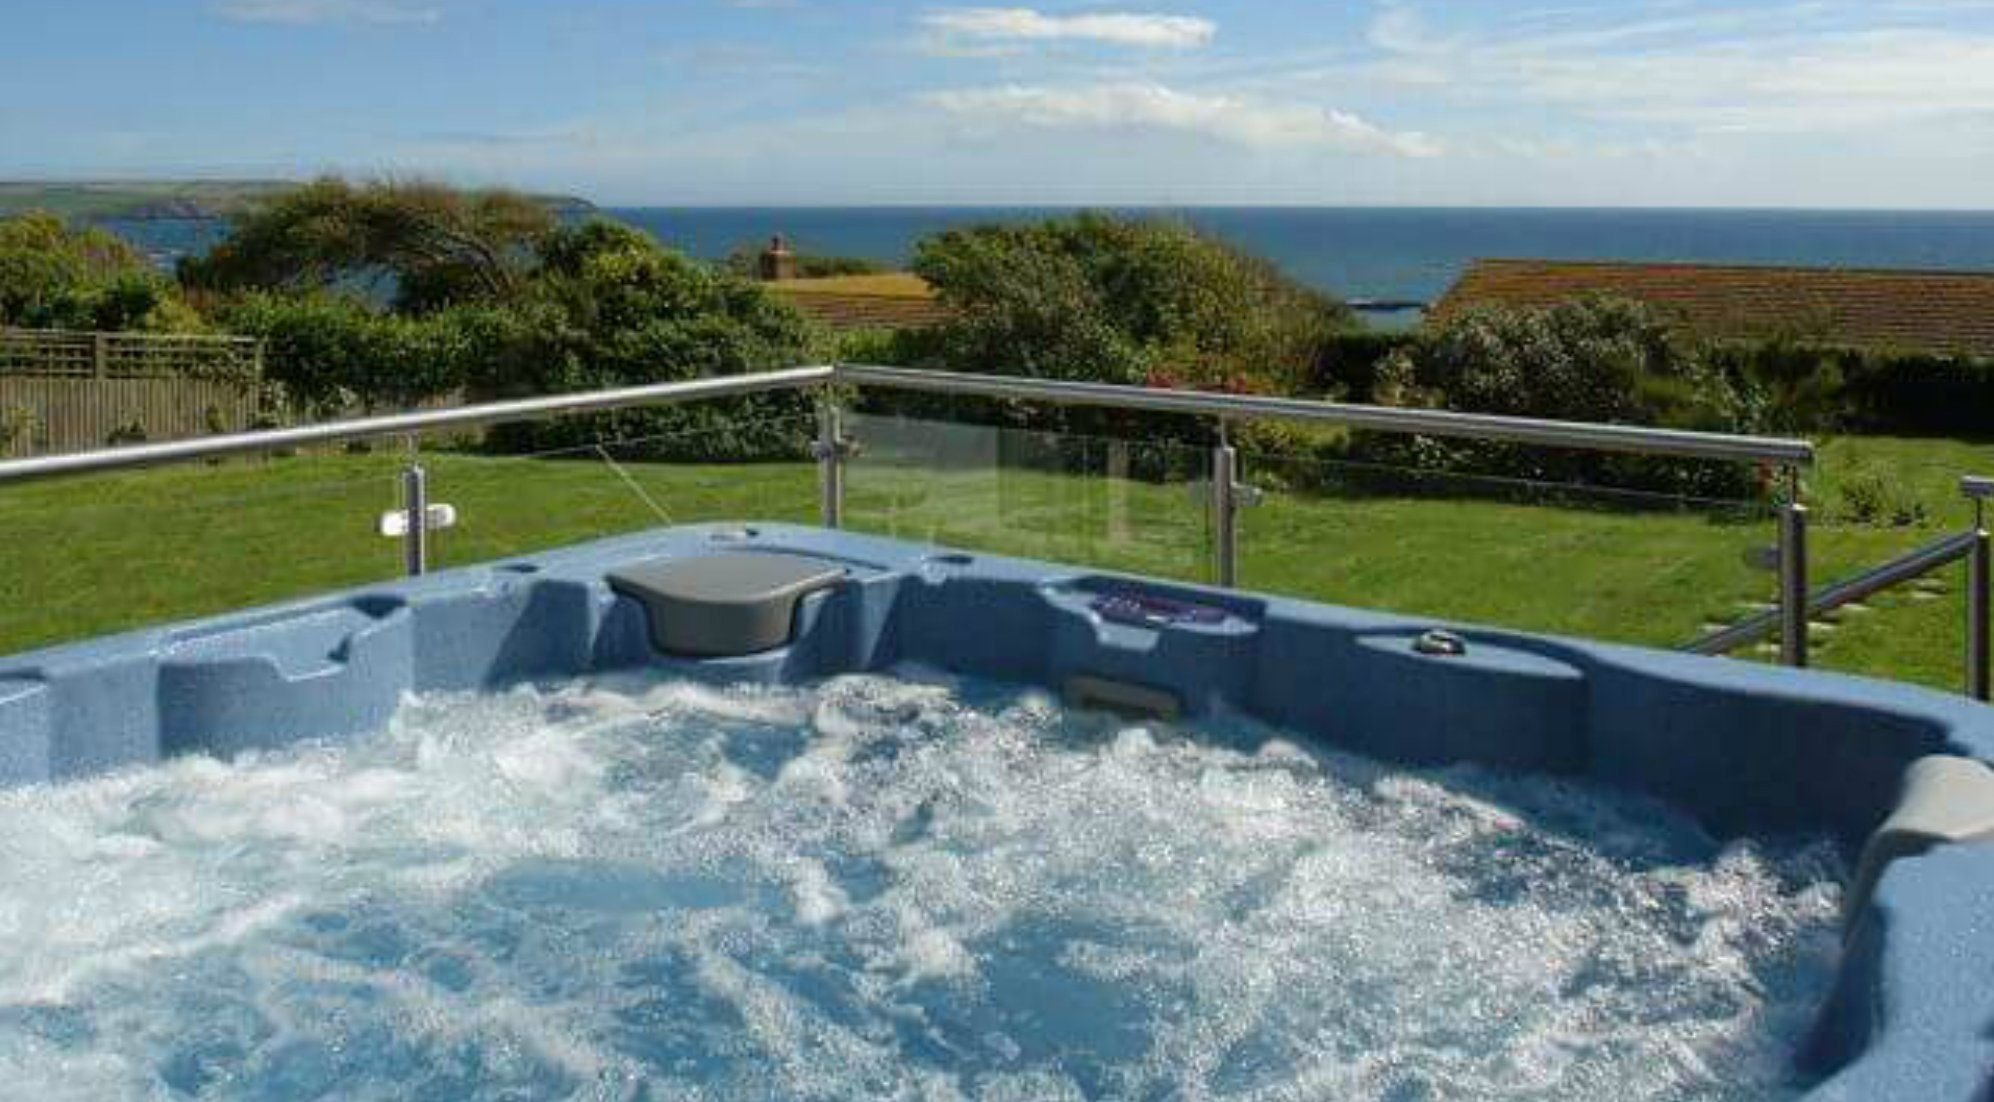 Jacuzzi Pool Service Hot Tub And Pool Maintenance Pebbles Of Salcombe